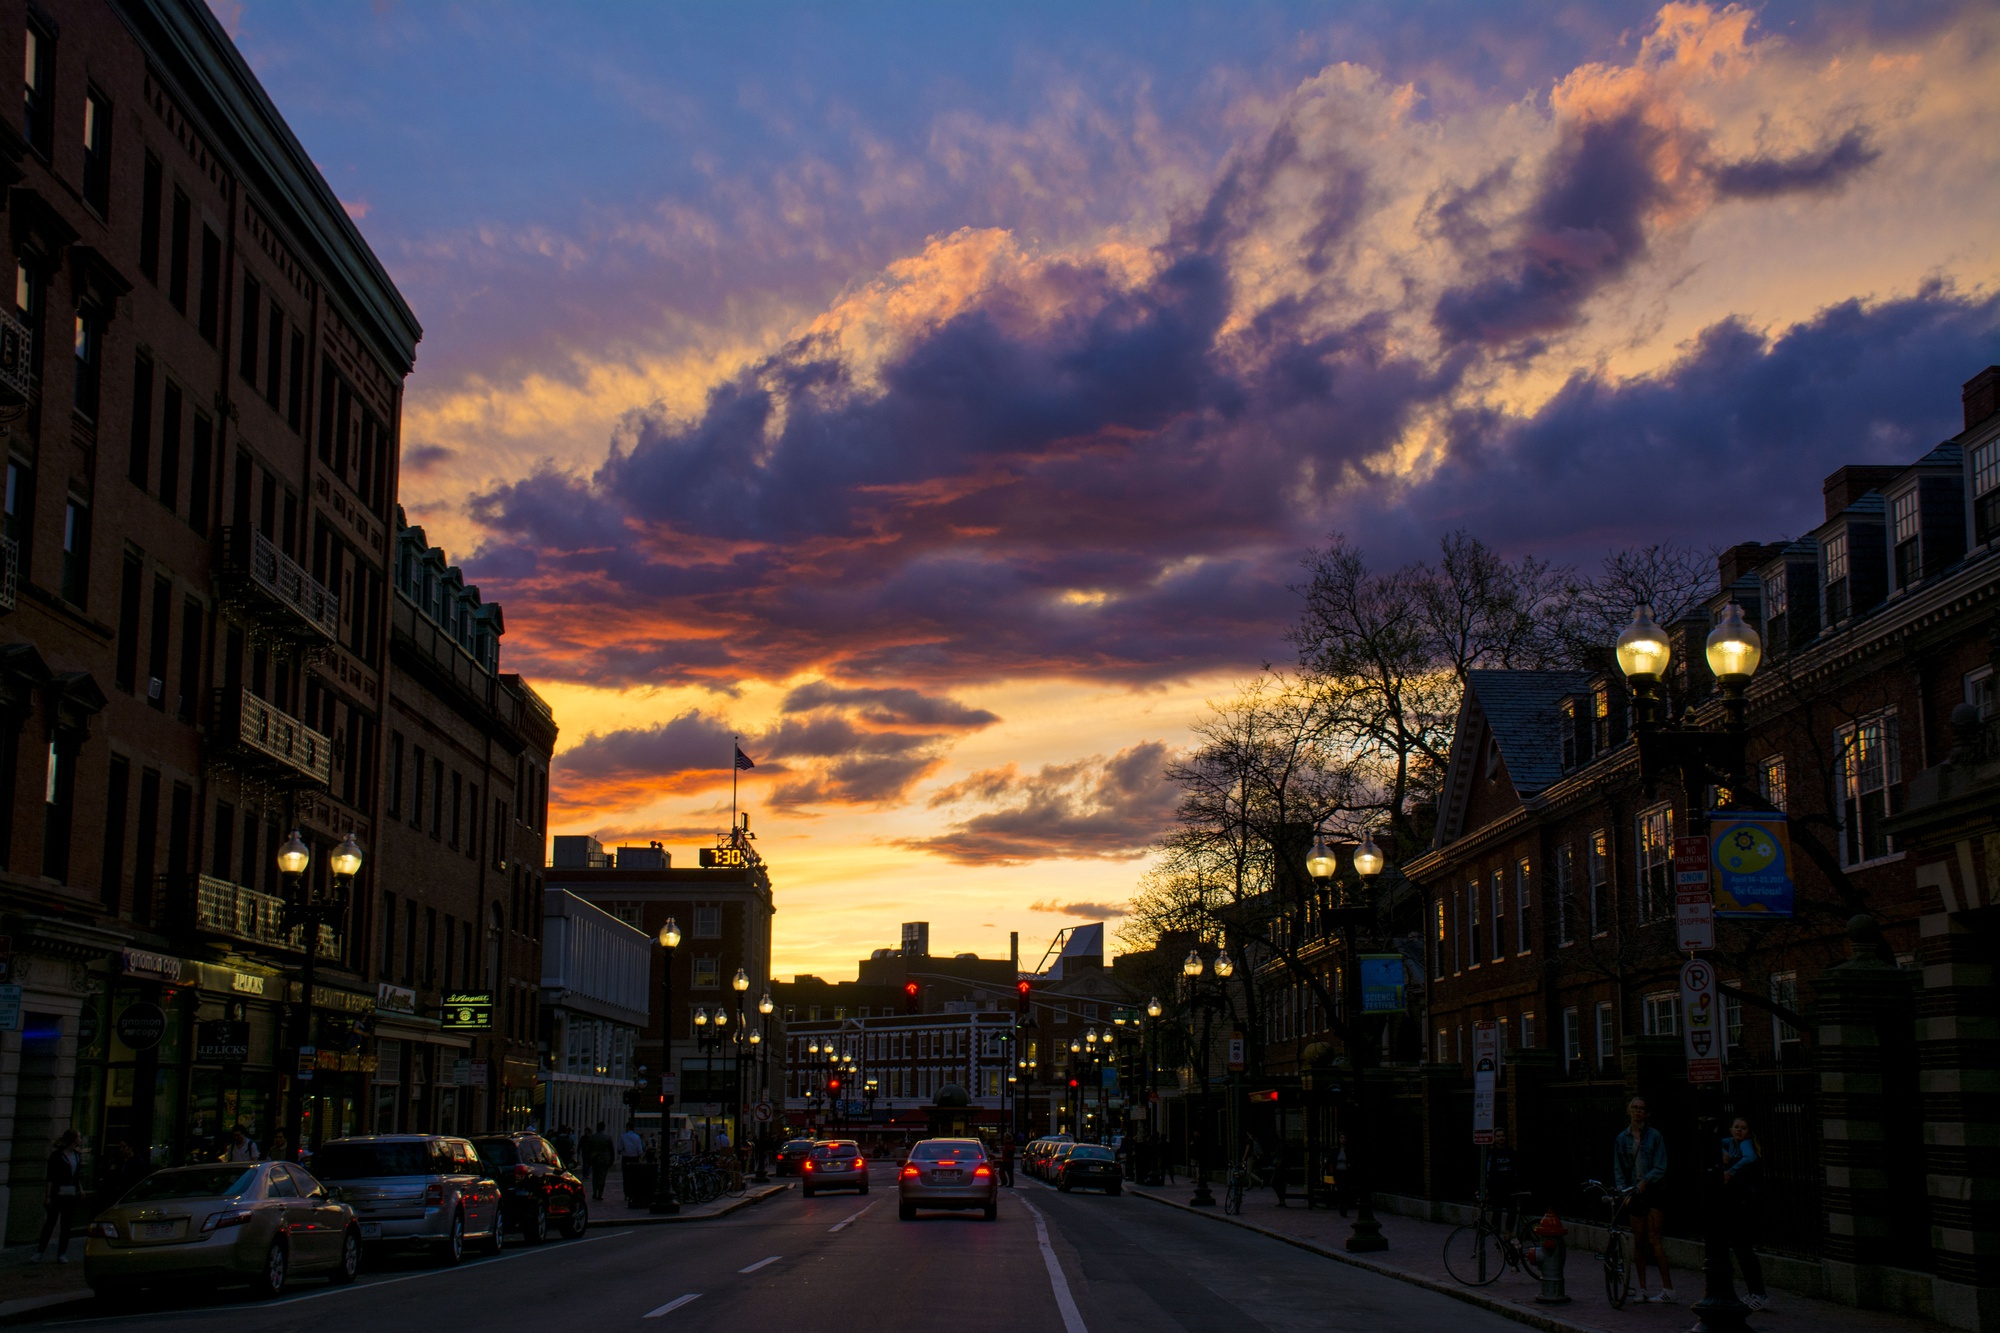 Springtime brings colorful sunsets back to Cambridge.